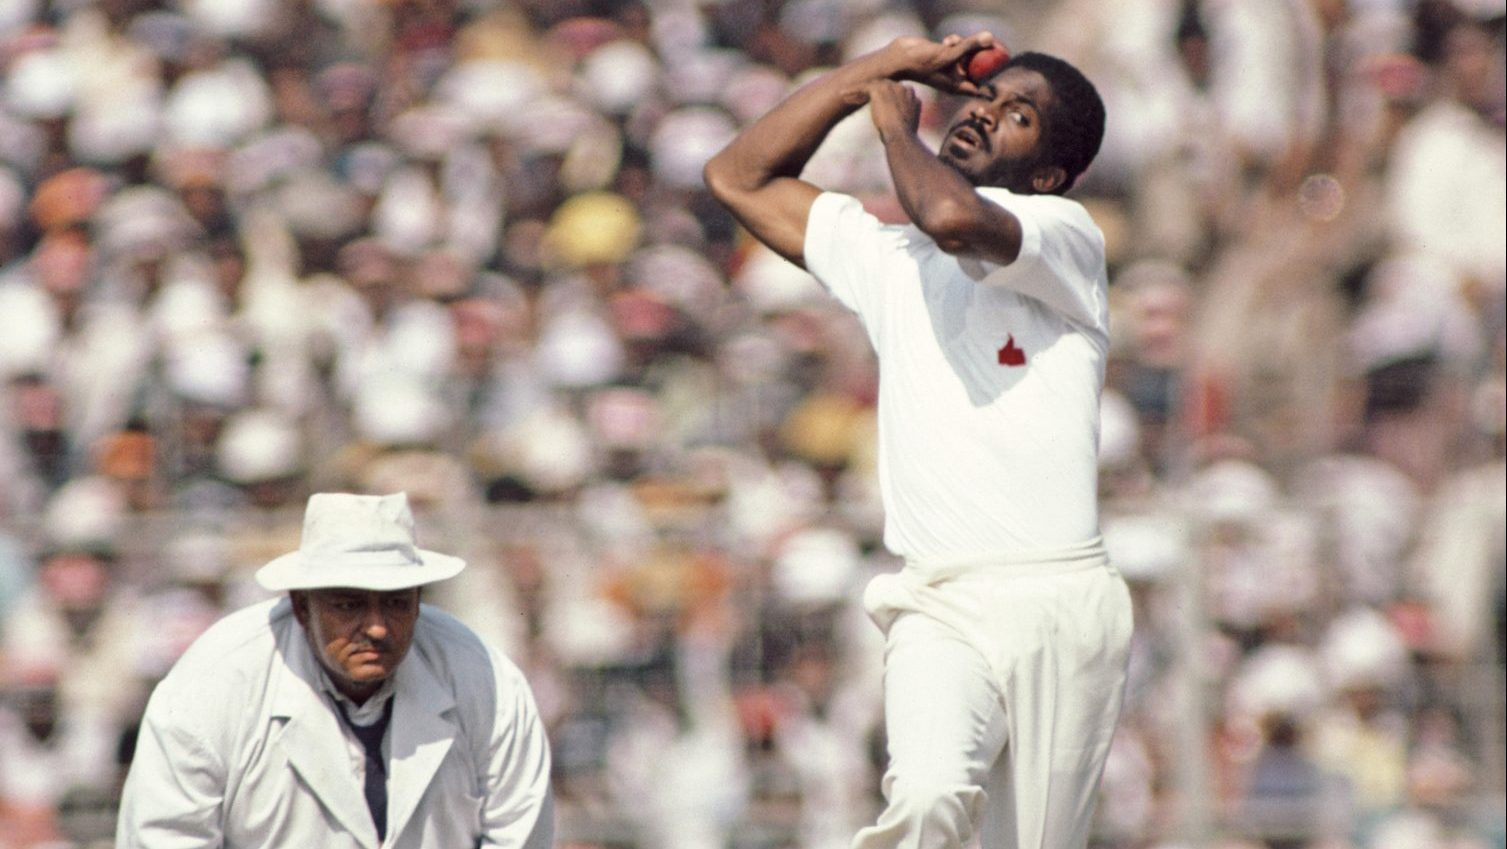 Michael Holding in action for the West Indies in a Test against India in 1983, as umpire Swaroop Kishen looks on. Credit: Hulton Archive/Getty